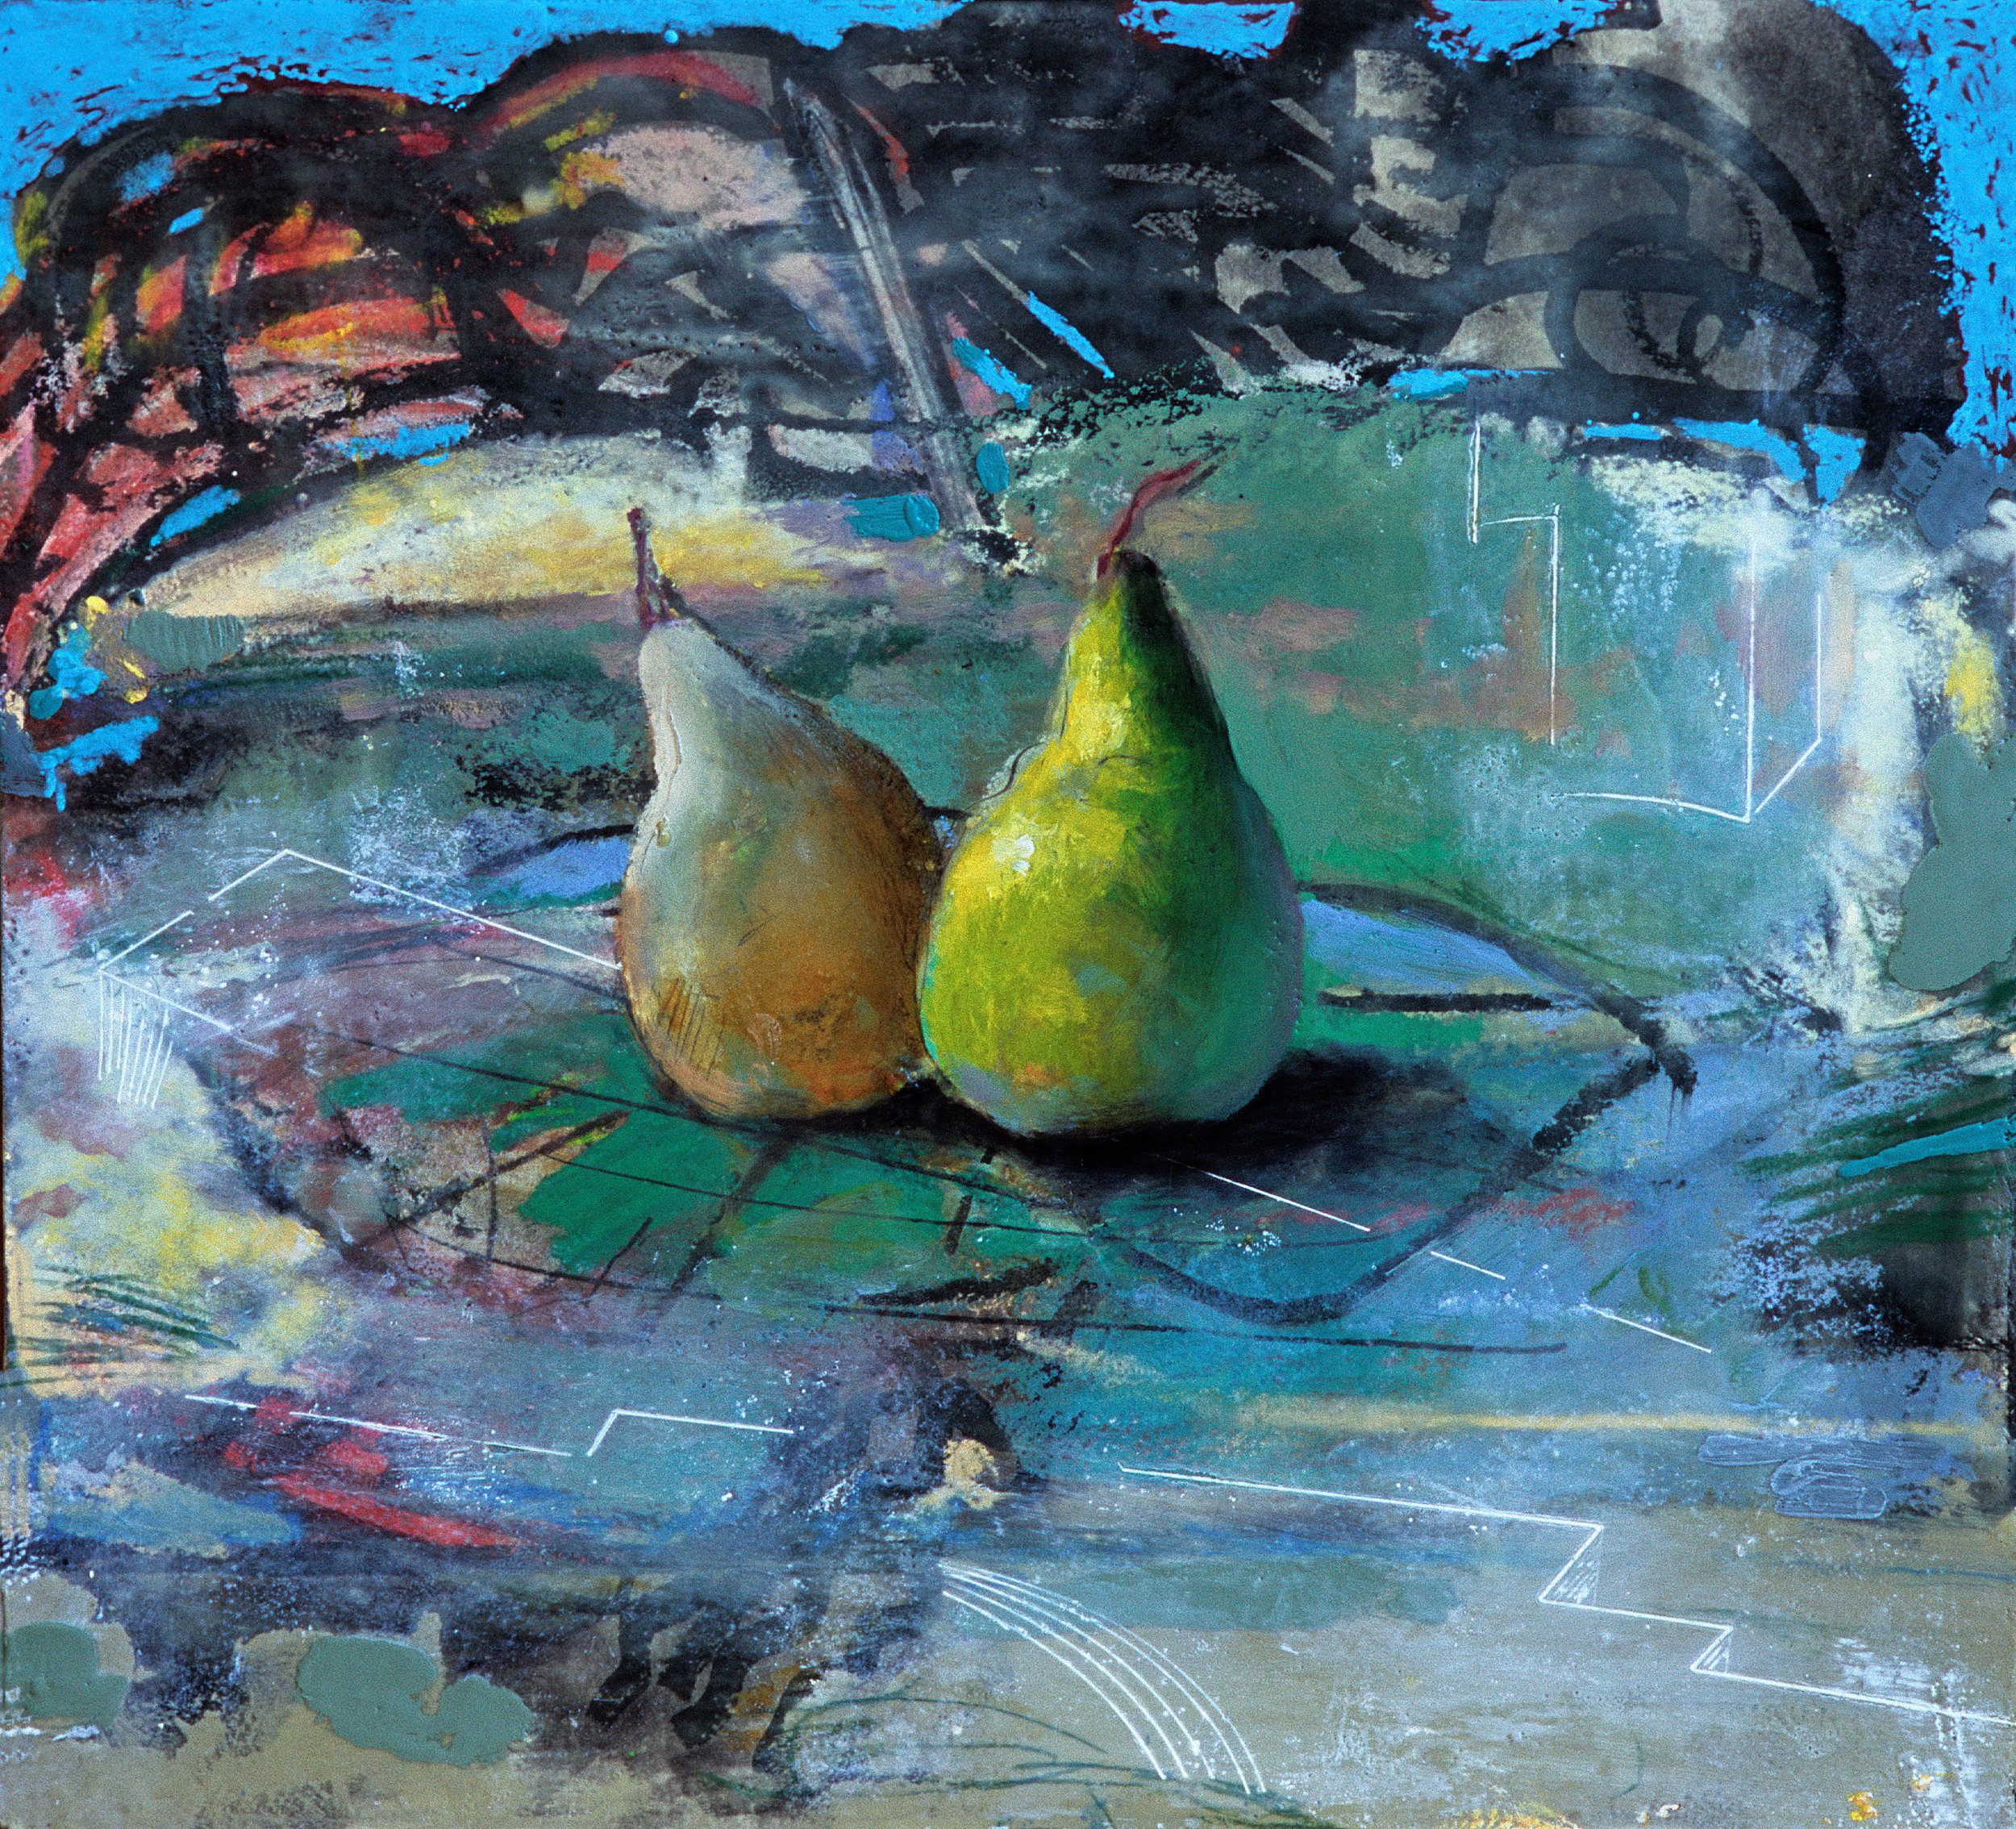 Two Pears on a Dance Floor